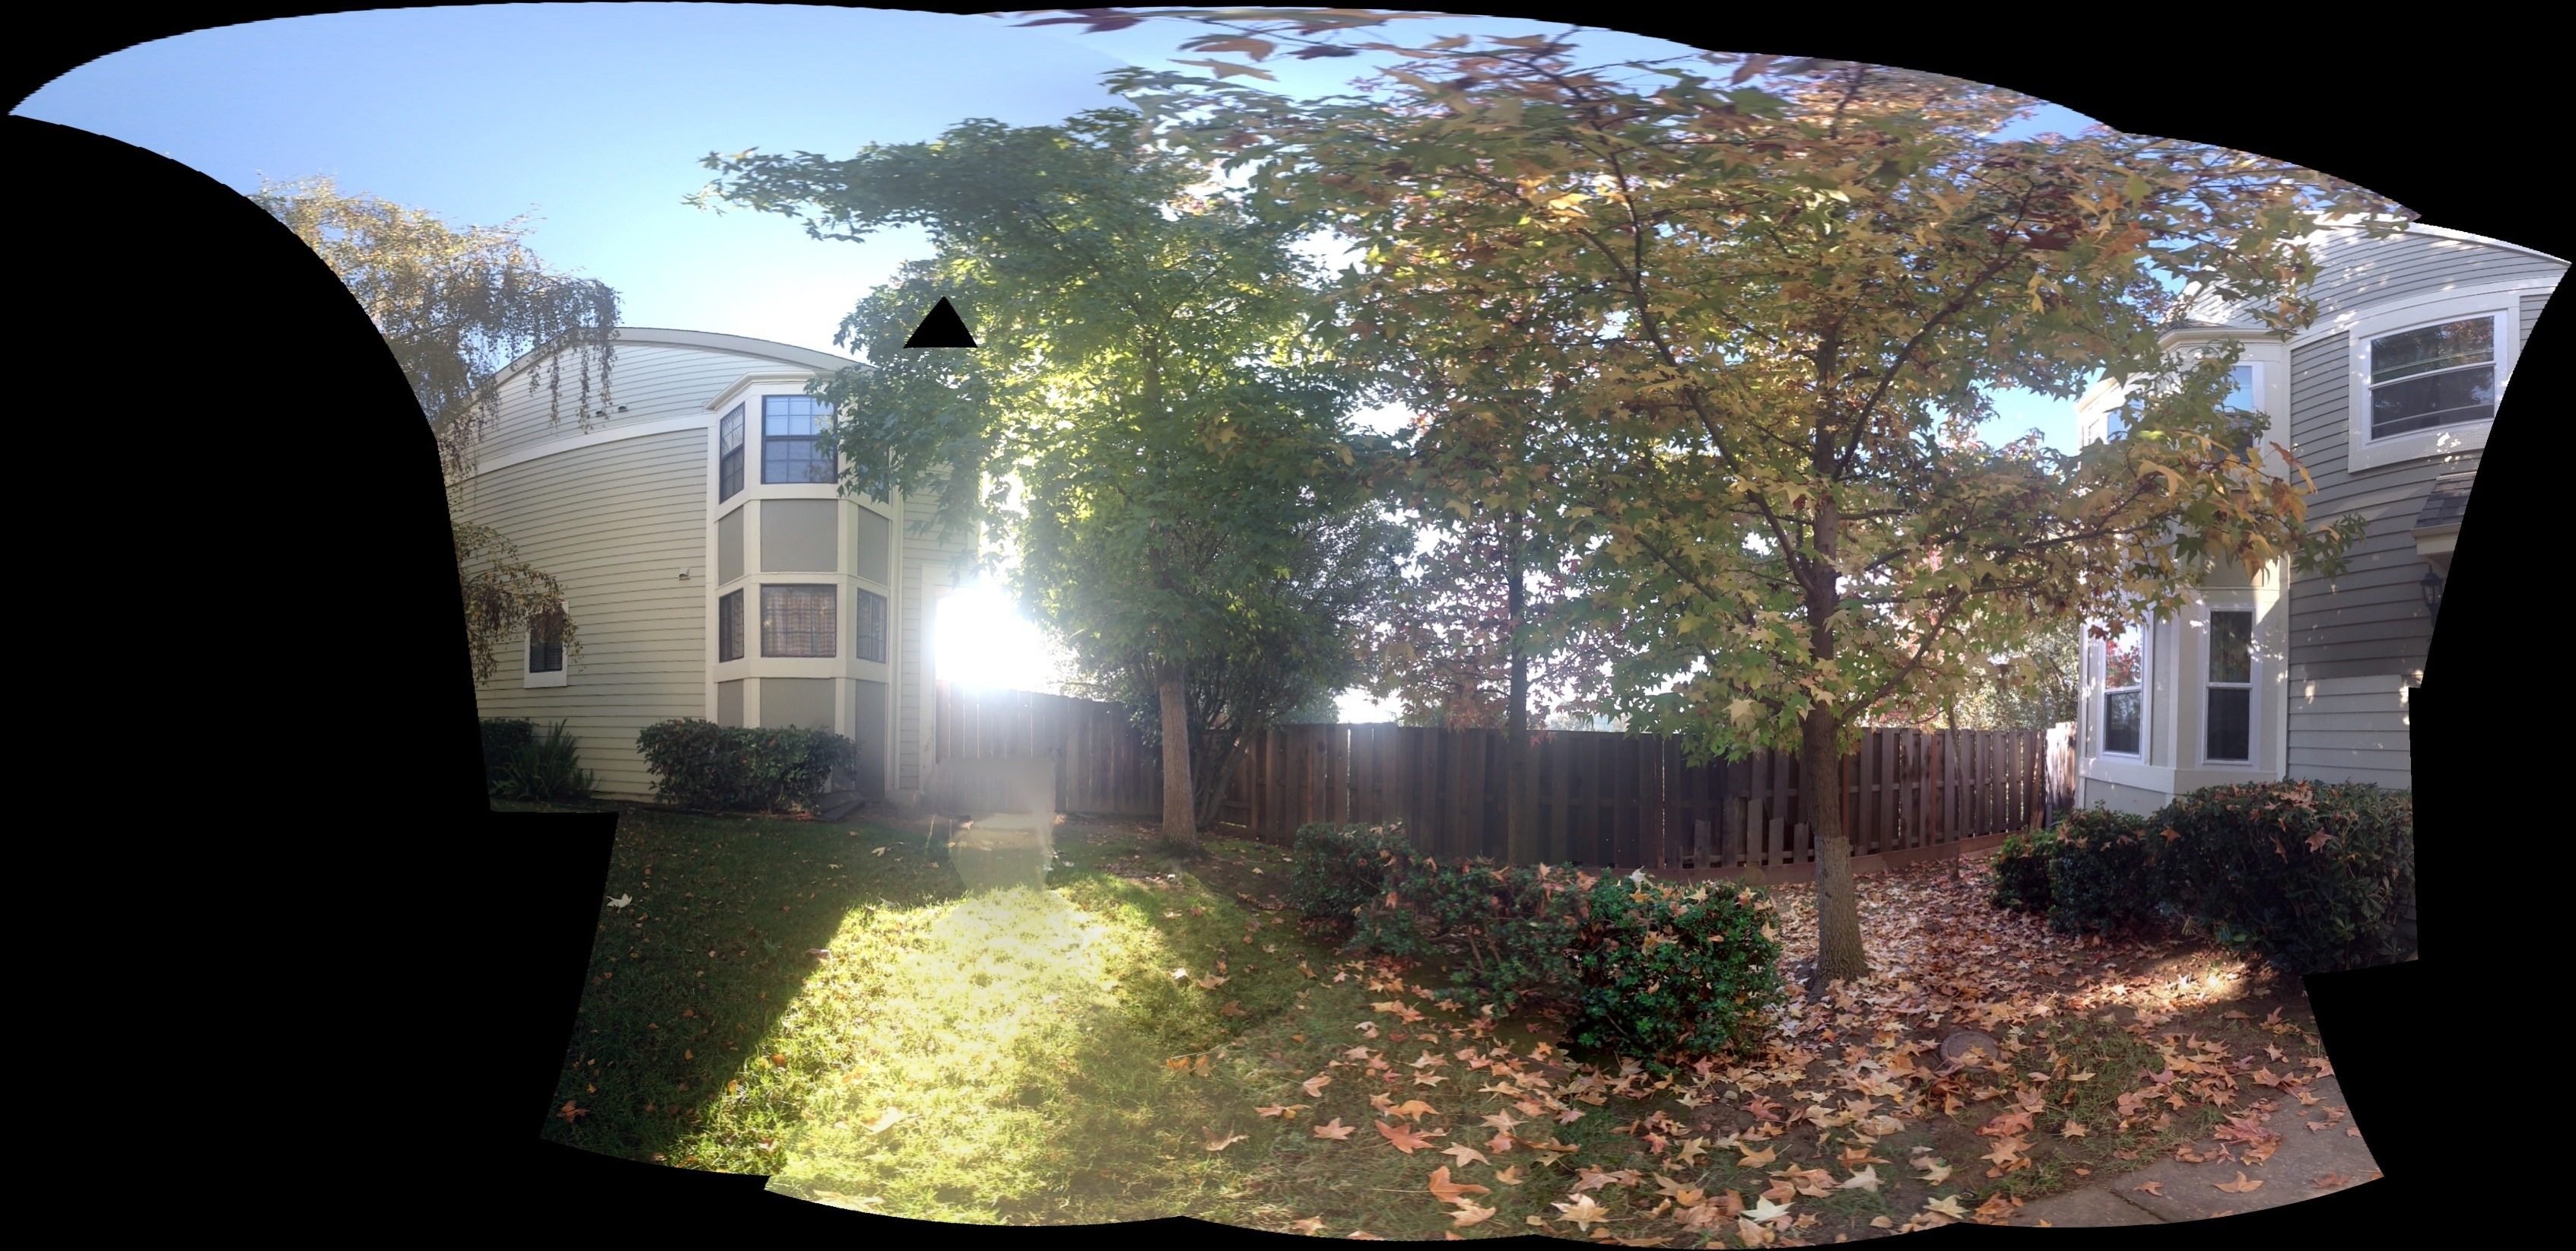 Microsoft's Photosynth app (seen here, though the photo was taken with an iPhone 4S) stitches together the photos in a semi-circular manner.